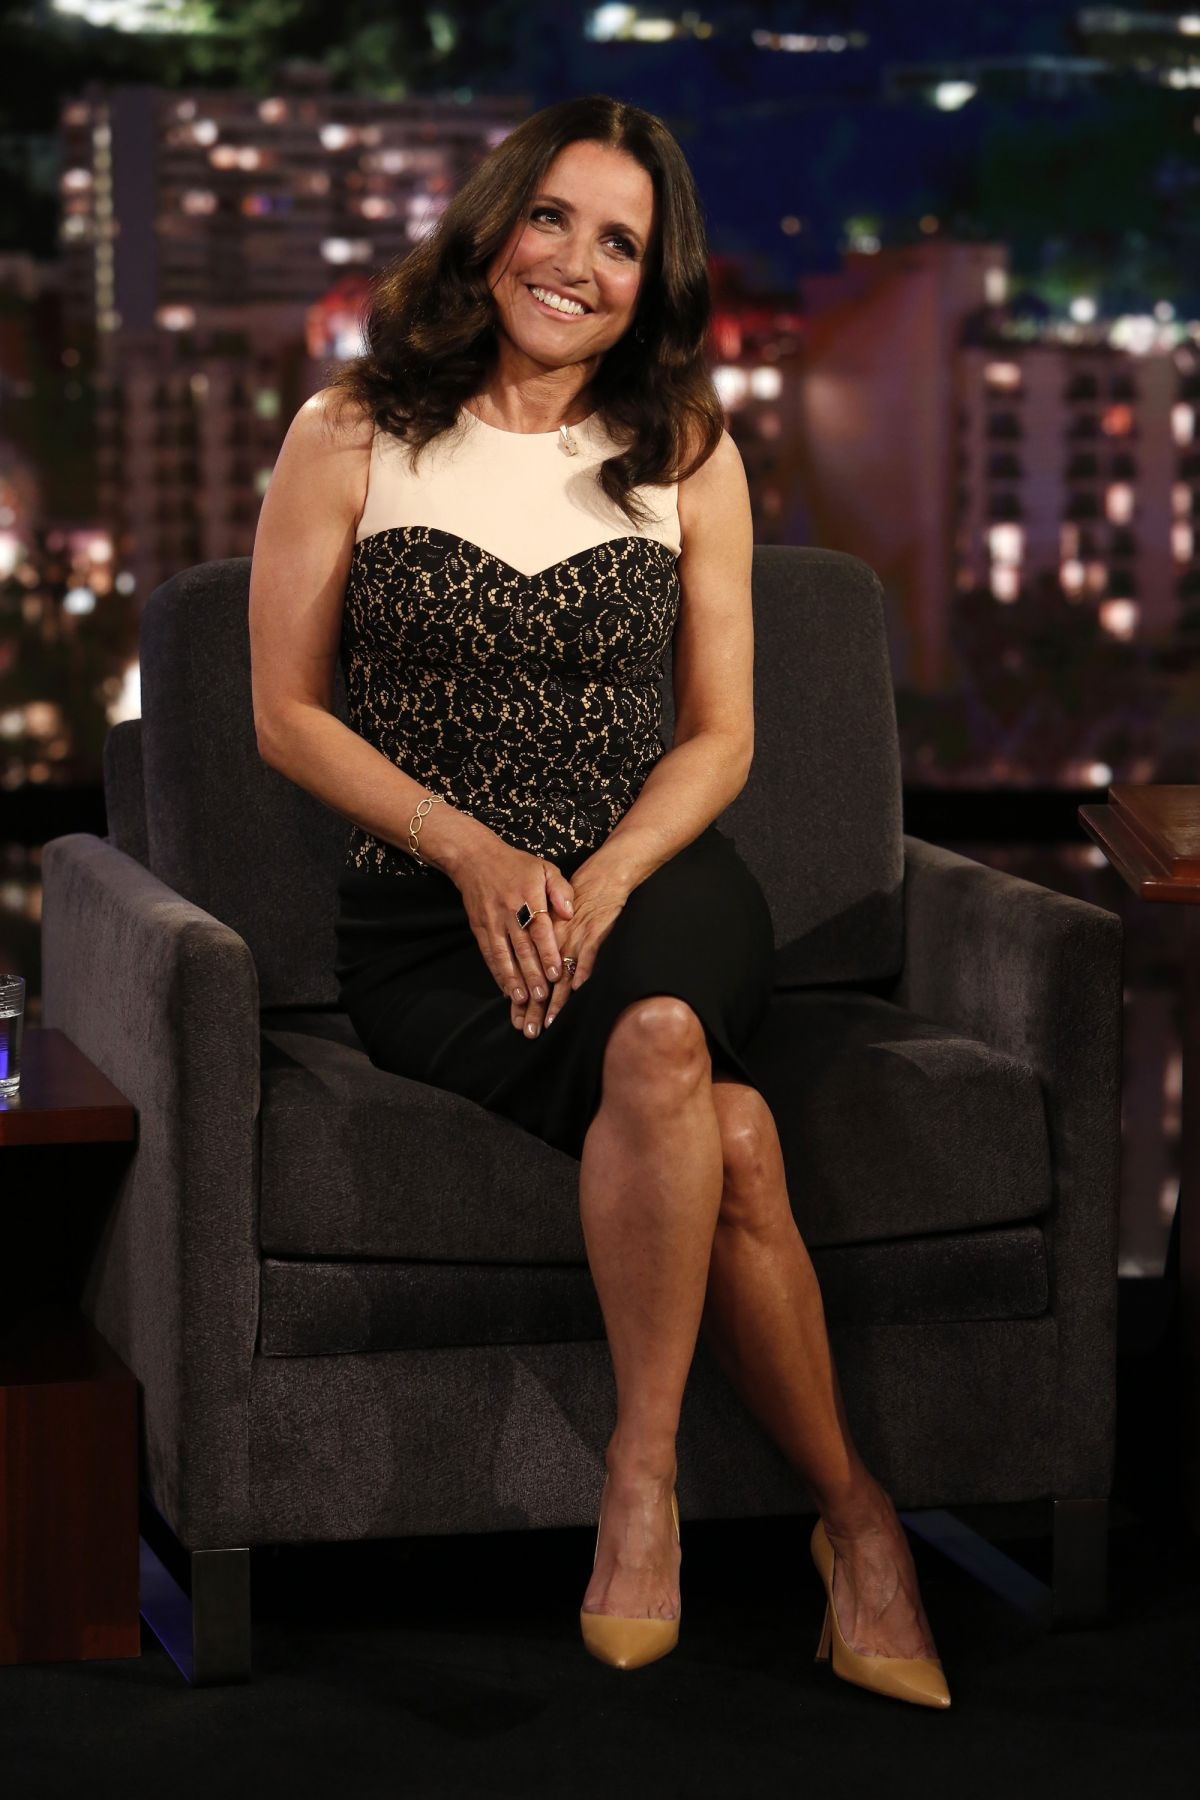 JULIA LOUIS-DREYFUS at Jimmy Kimmel Live 04/19/2017